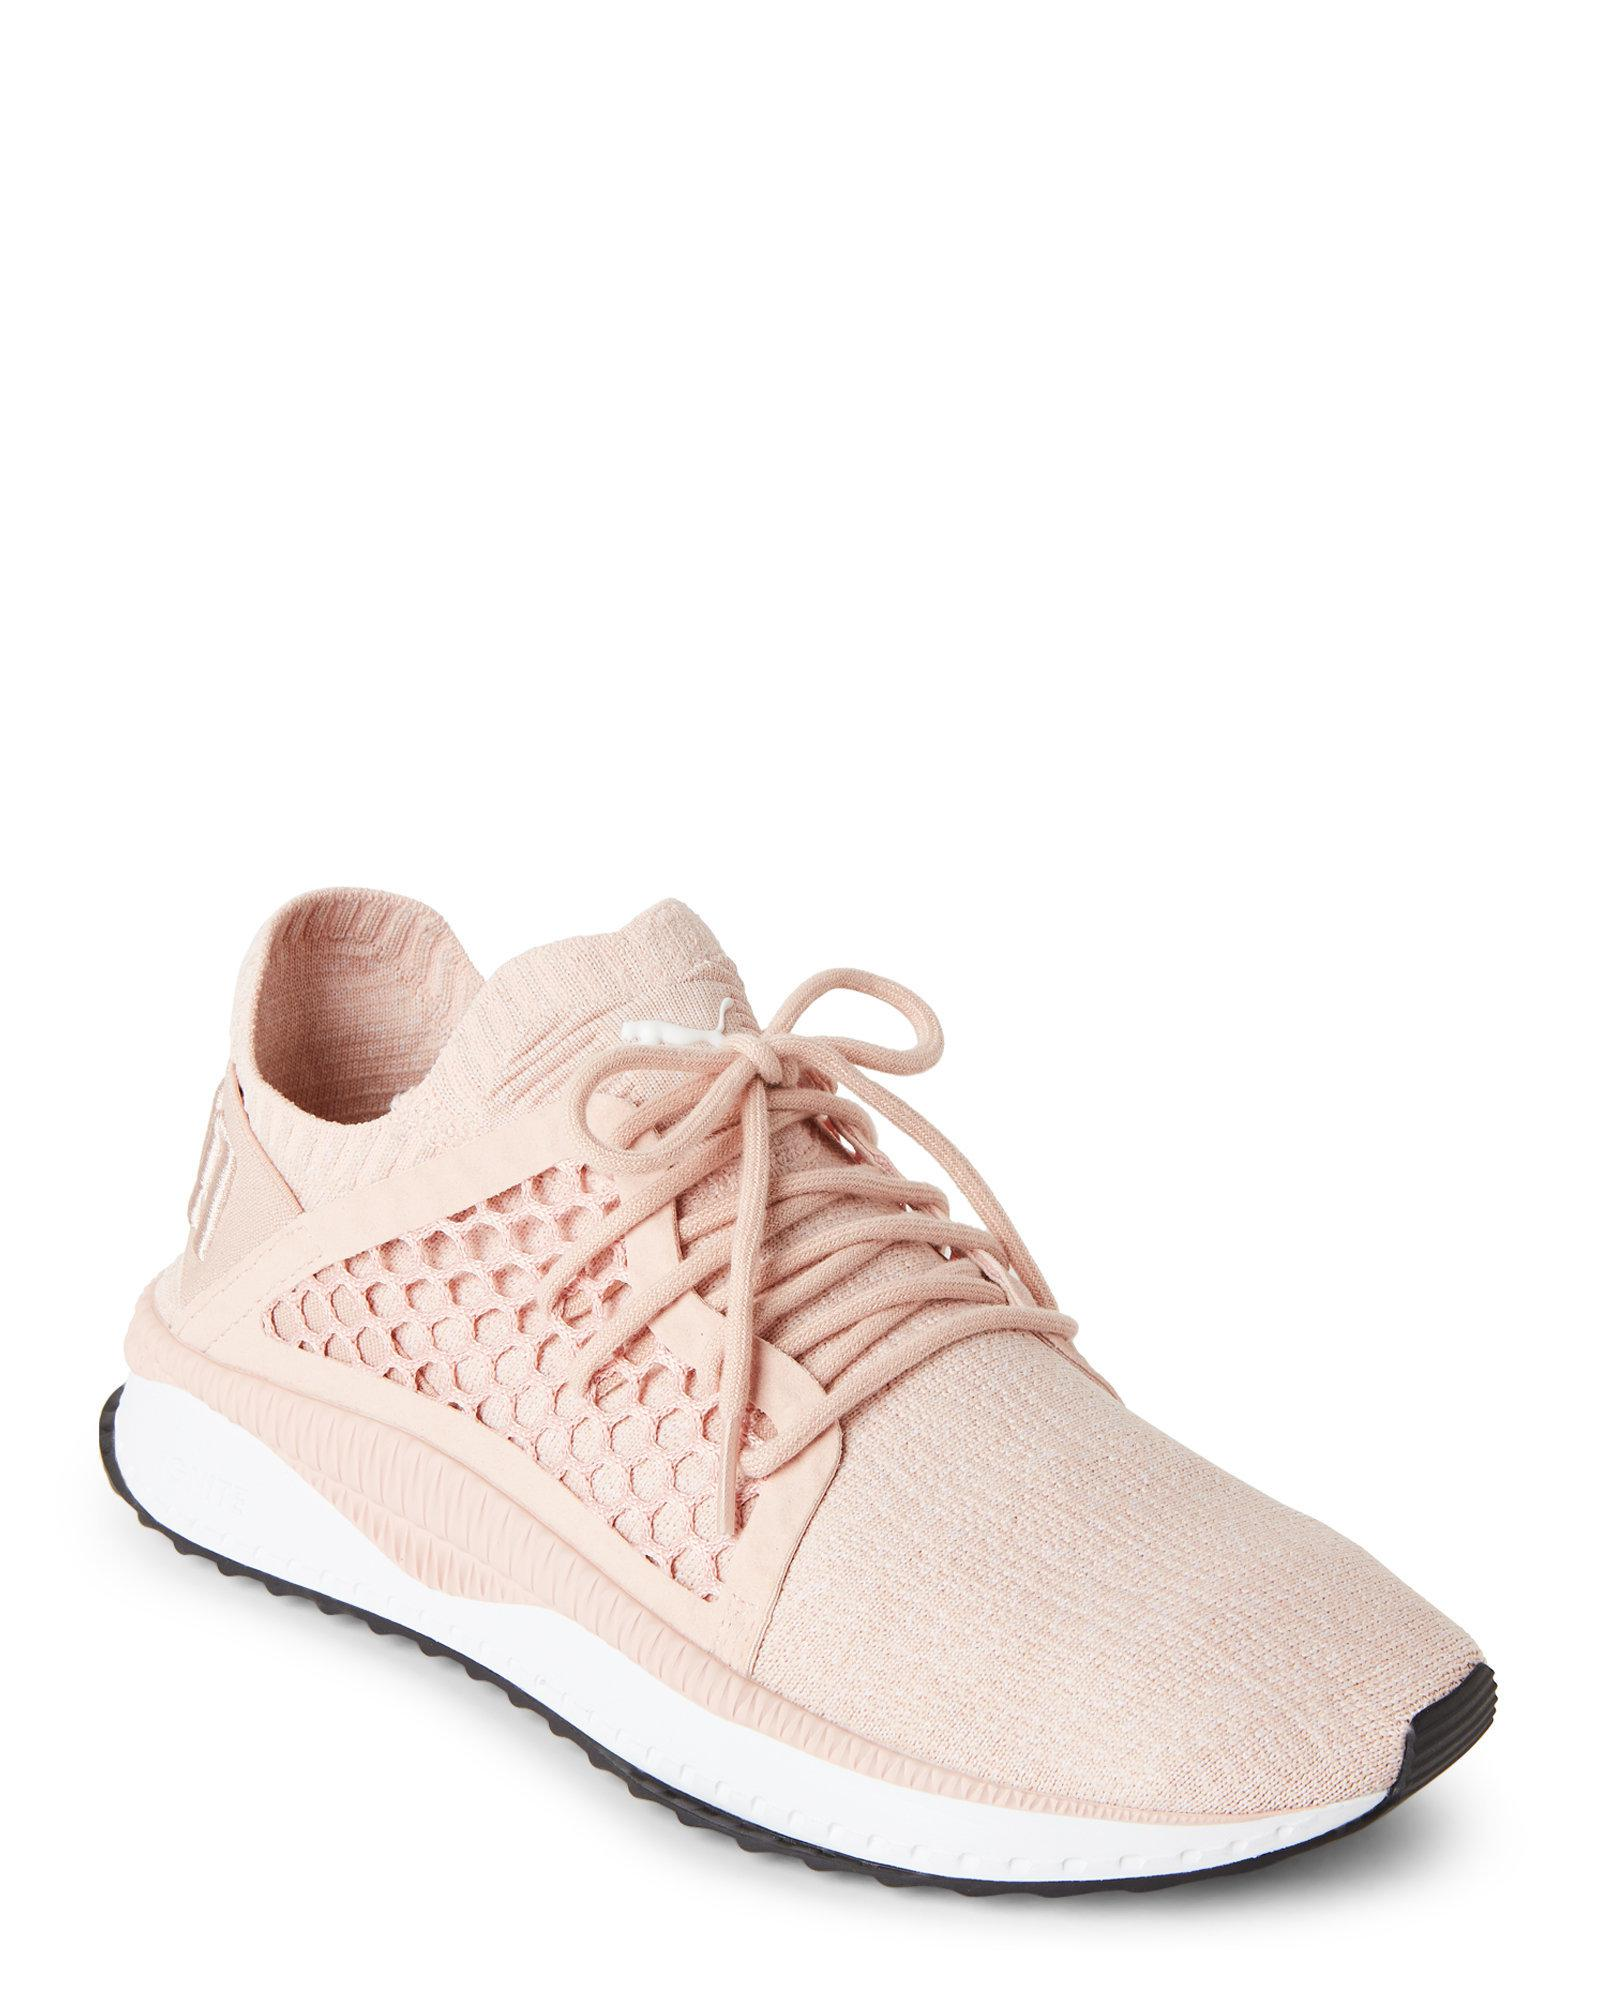 separation shoes 432c2 f470f PUMA Pink Cameo Rose & White Tsugi Netfit Evoknit Sneakers